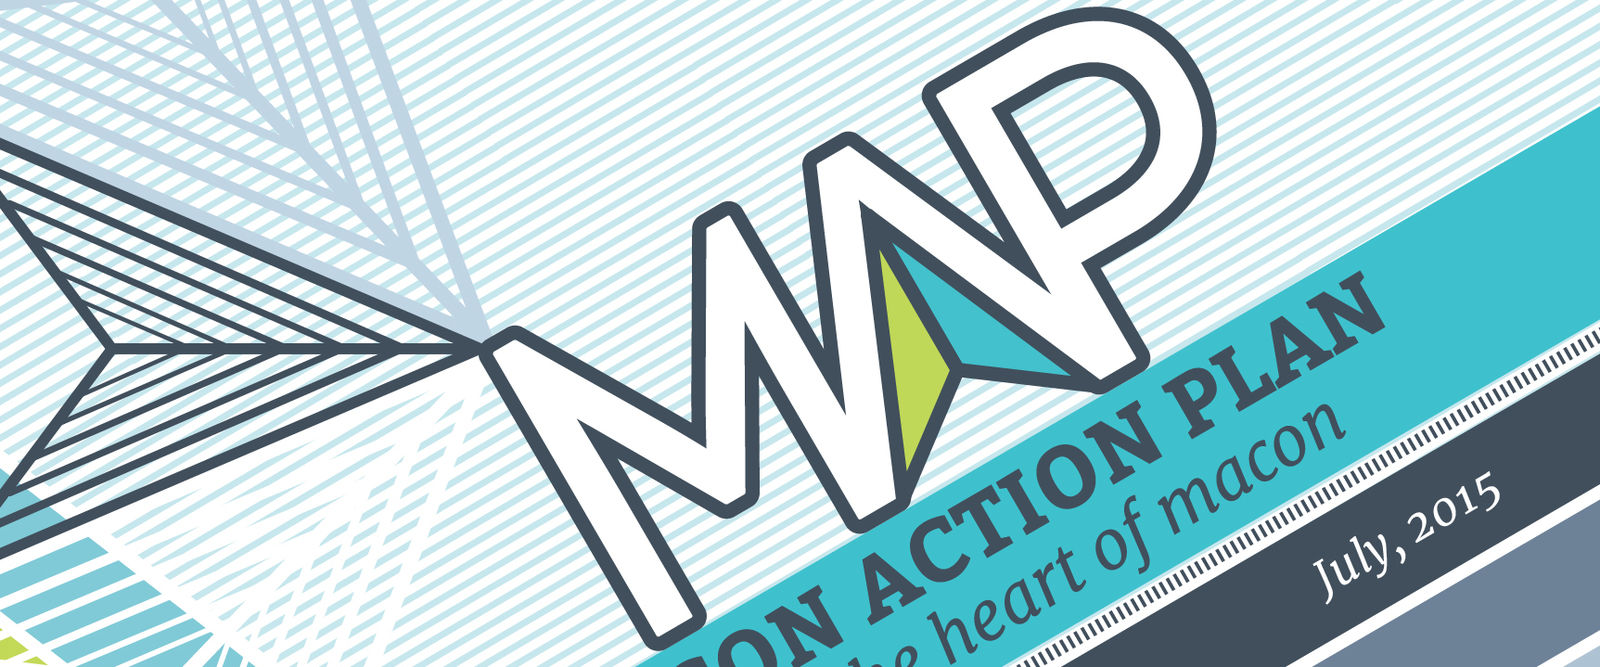 Macon Action Plan